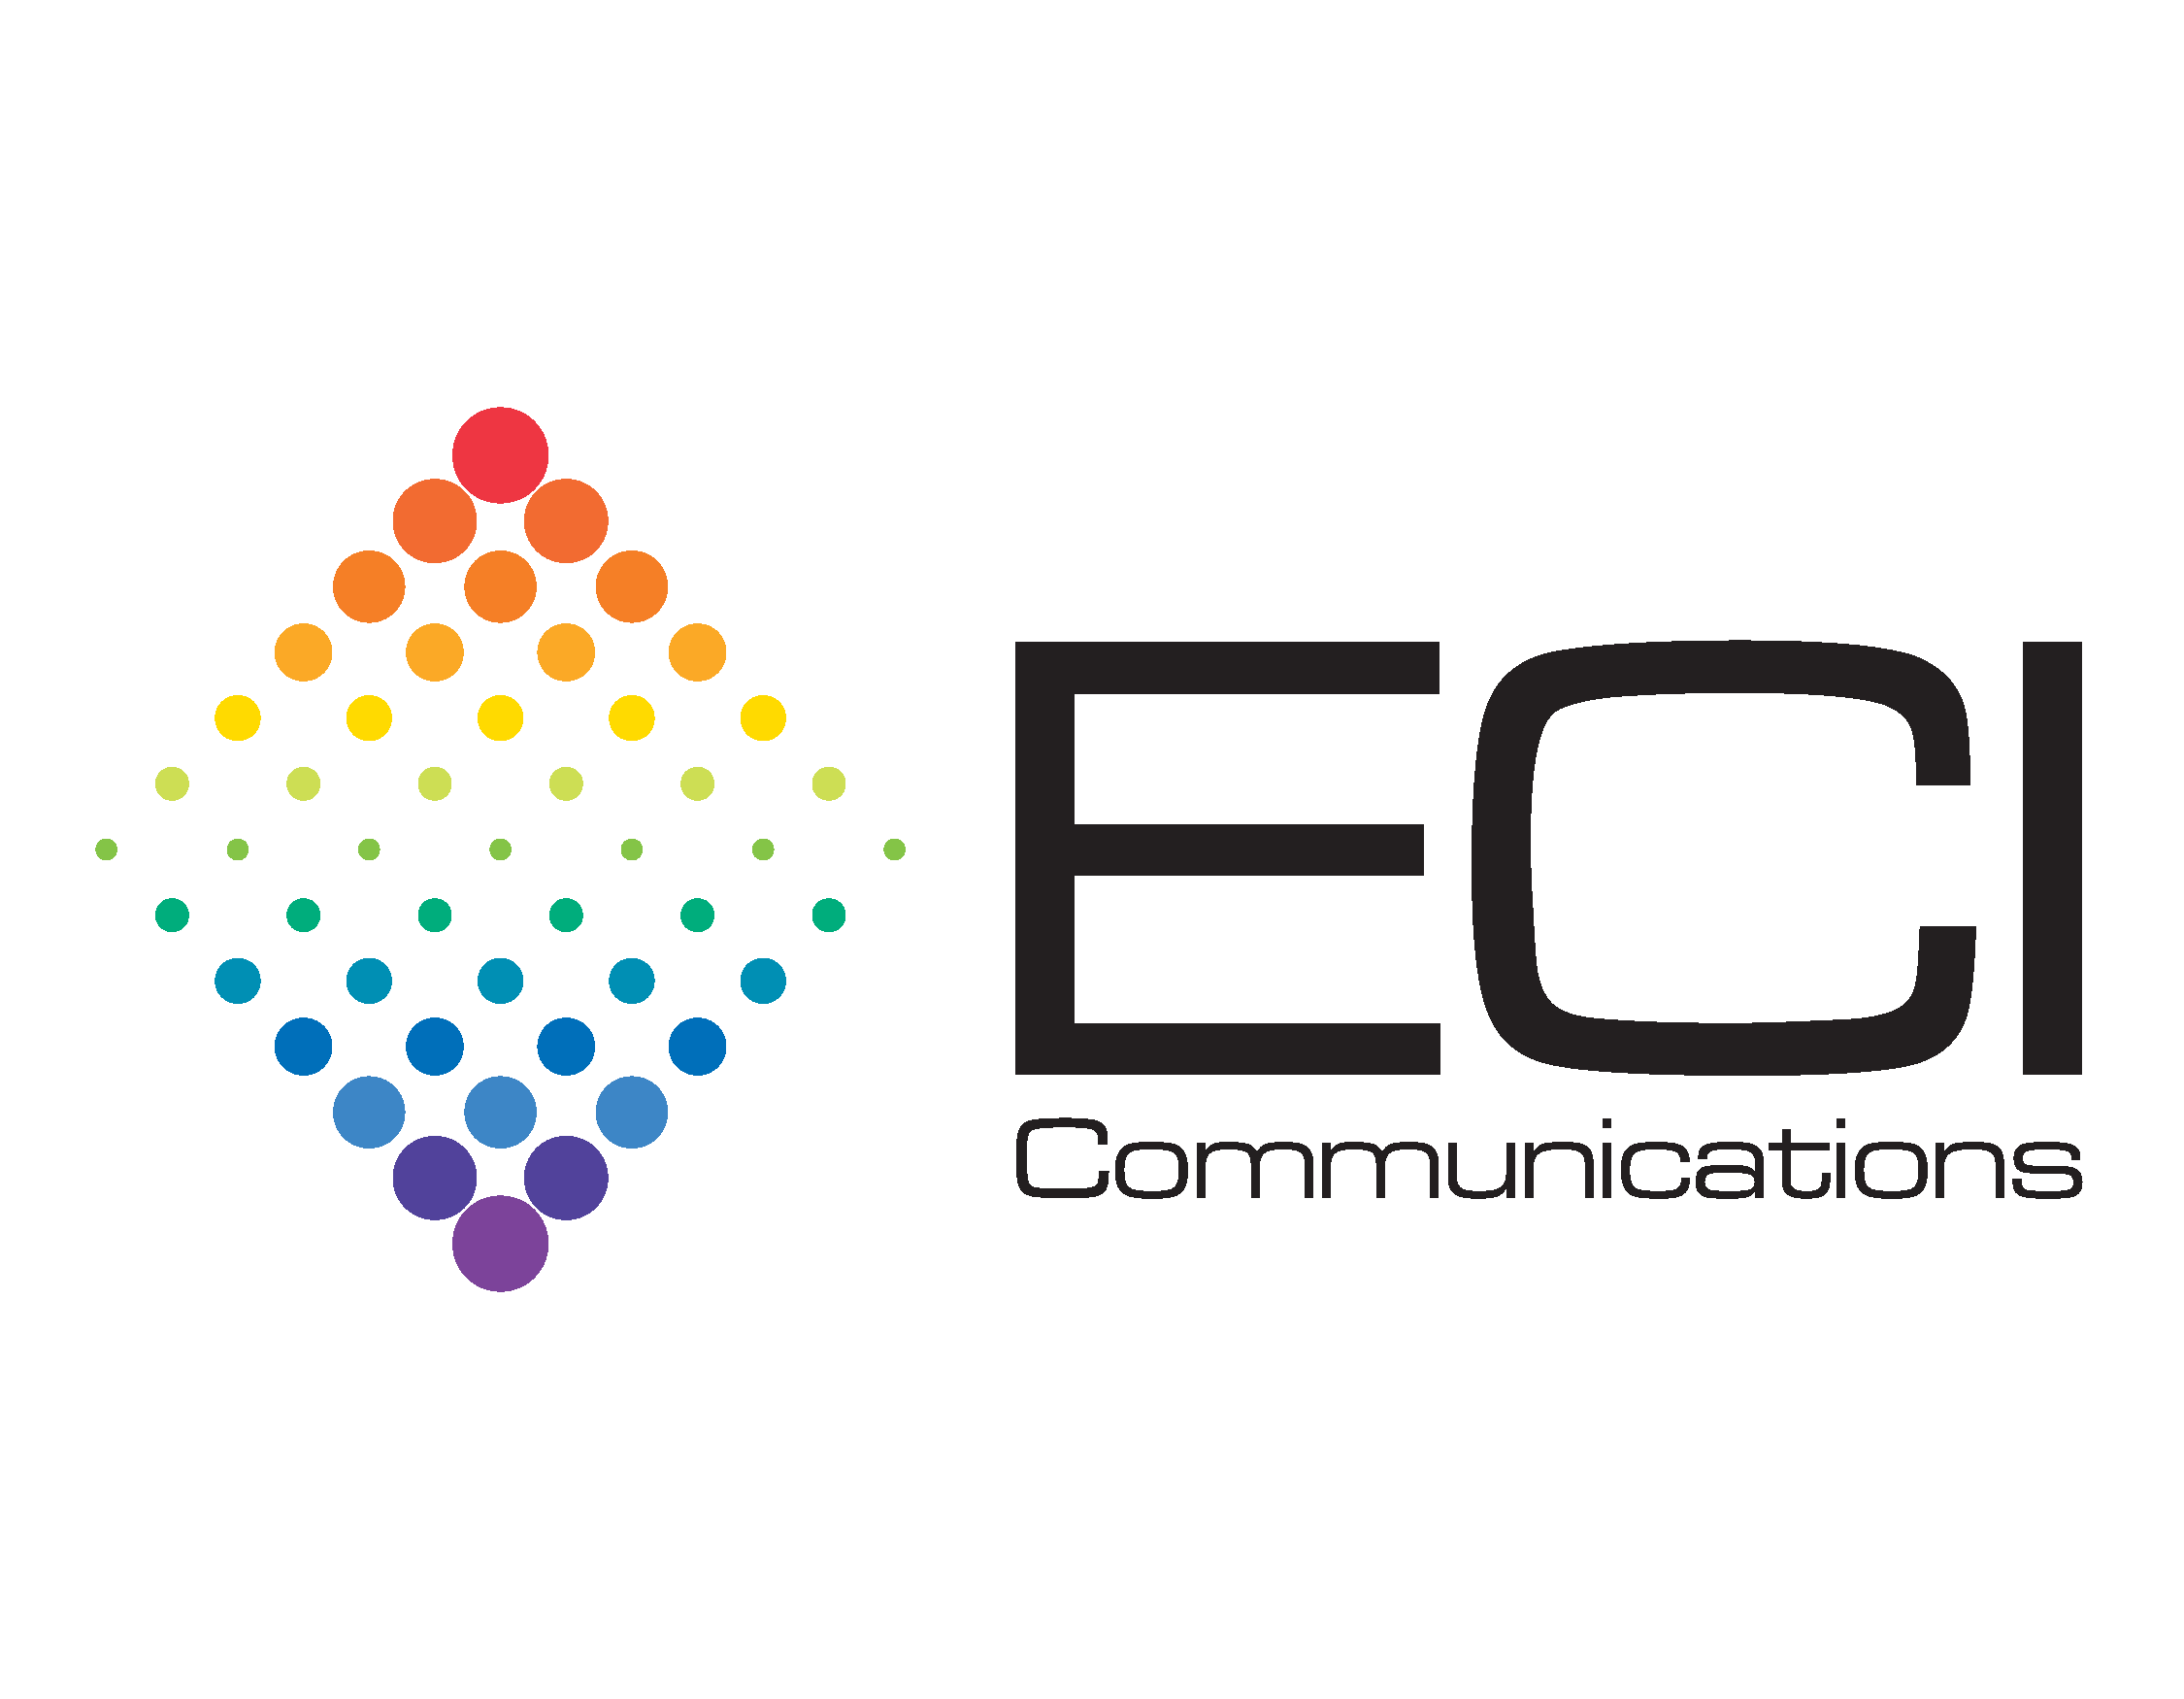 ECI Communications - or more than 40 years, ECI has designed and installed award-winning Audio-Video systems for the world's top brands. We've been pioneering the field since 1971.Our clients include:International Brands: Hilton Hotels, McDonaldsCorporations: AT&T, Texaco, UPS Corporation, SonyHaute Couture Designers: Ralph Lauren, Armani, Michael Kors, ChanelPublic Venues: Rock & Roll Hall of Fame, Museum of Contemporary ArtRetail Spaces: Nordstrom's, Saks Fifth Avenue, Bloomingdale'sWe've also been behind several industry milestones. Our Music Preview Station is America's largest national installation network. Our partners also enjoy a unique Revolving Inventory Program and new 5 Year Extended Warranty Program.Headquartered in Florida and New Jersey, we maintain strategic partnerships with all leading AV manufacturers and technology providers.Our international company is built on close relationships with every client, allowing us to deliver creative, custom solutions with unique attention to detail and customer service.www.ecicomm.com